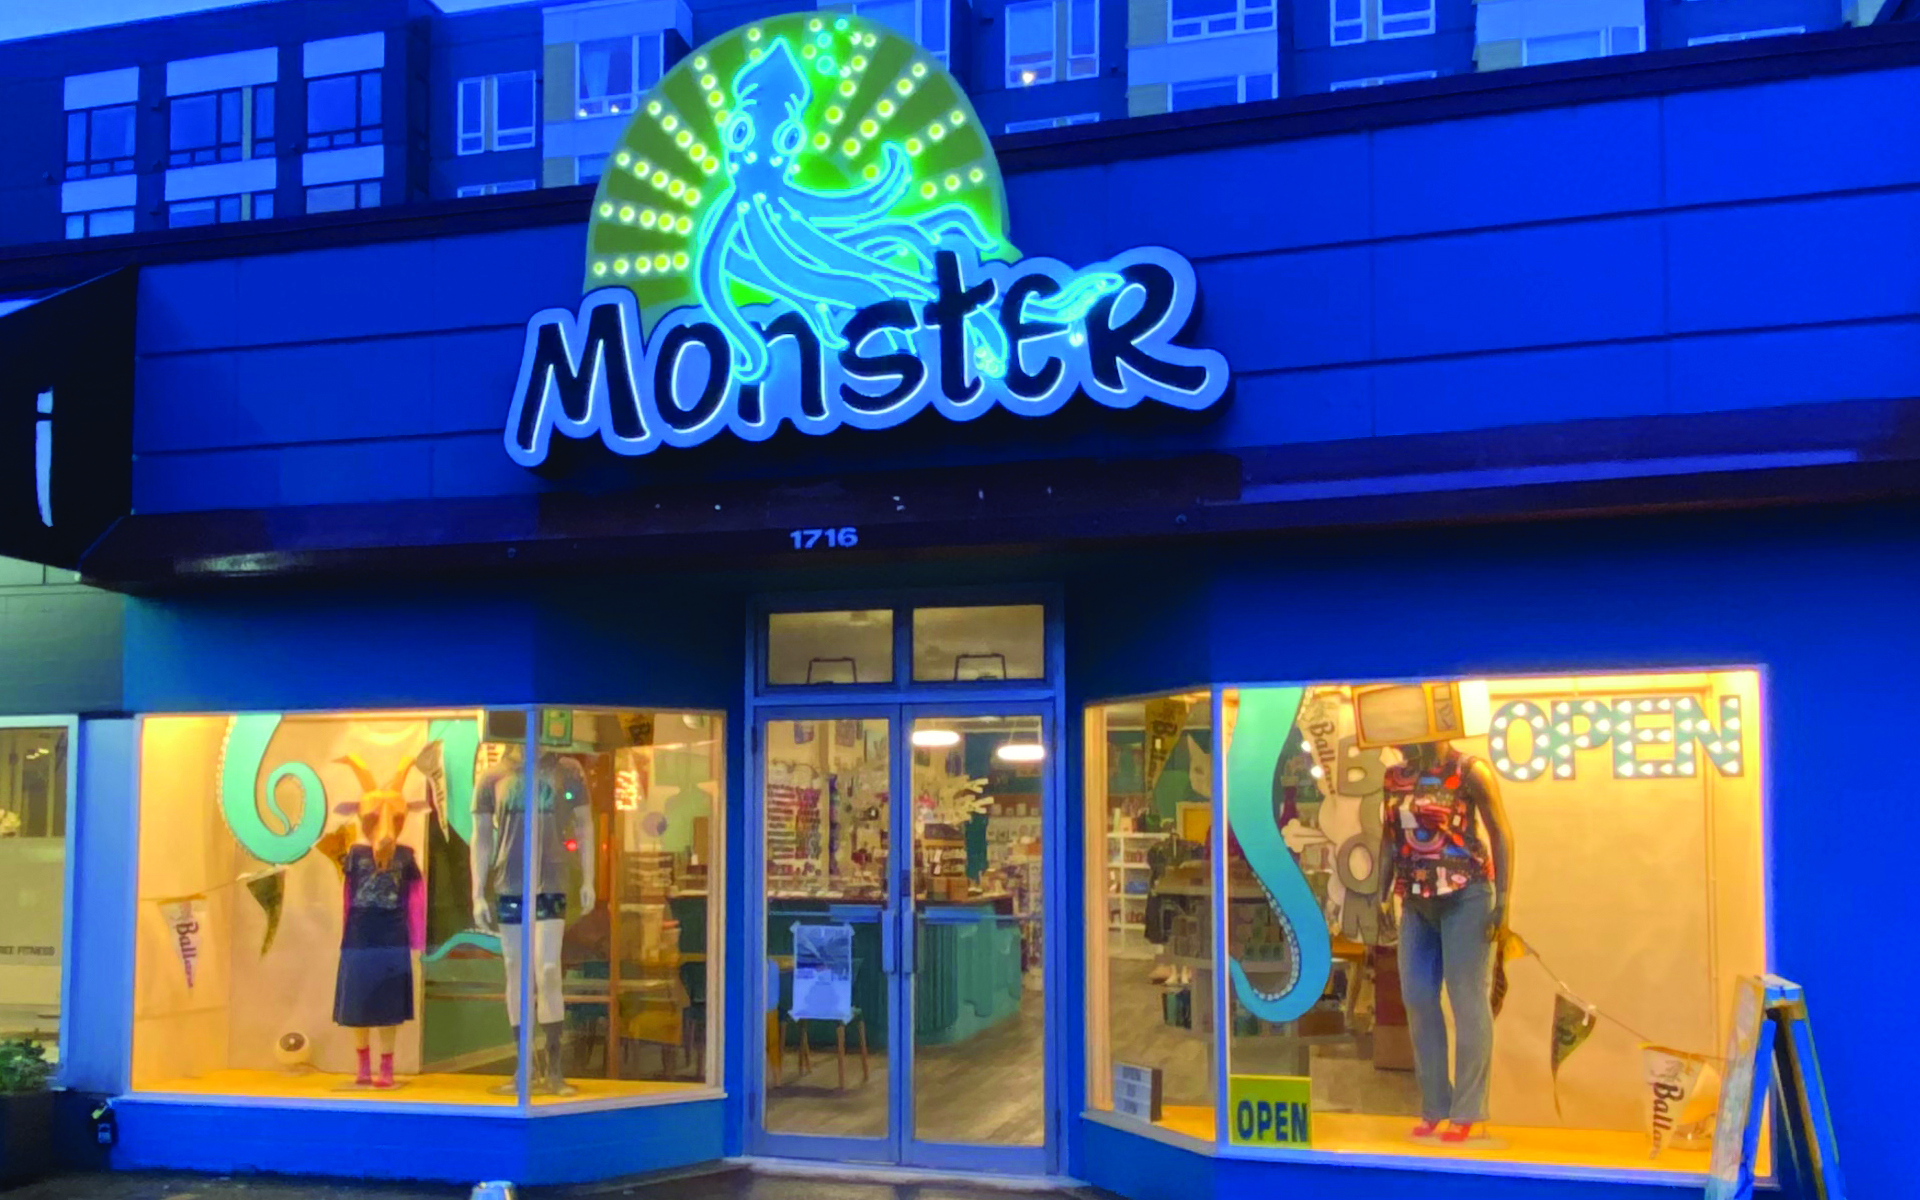 Photo of exterior of a storefront in the evening with the Monster logo